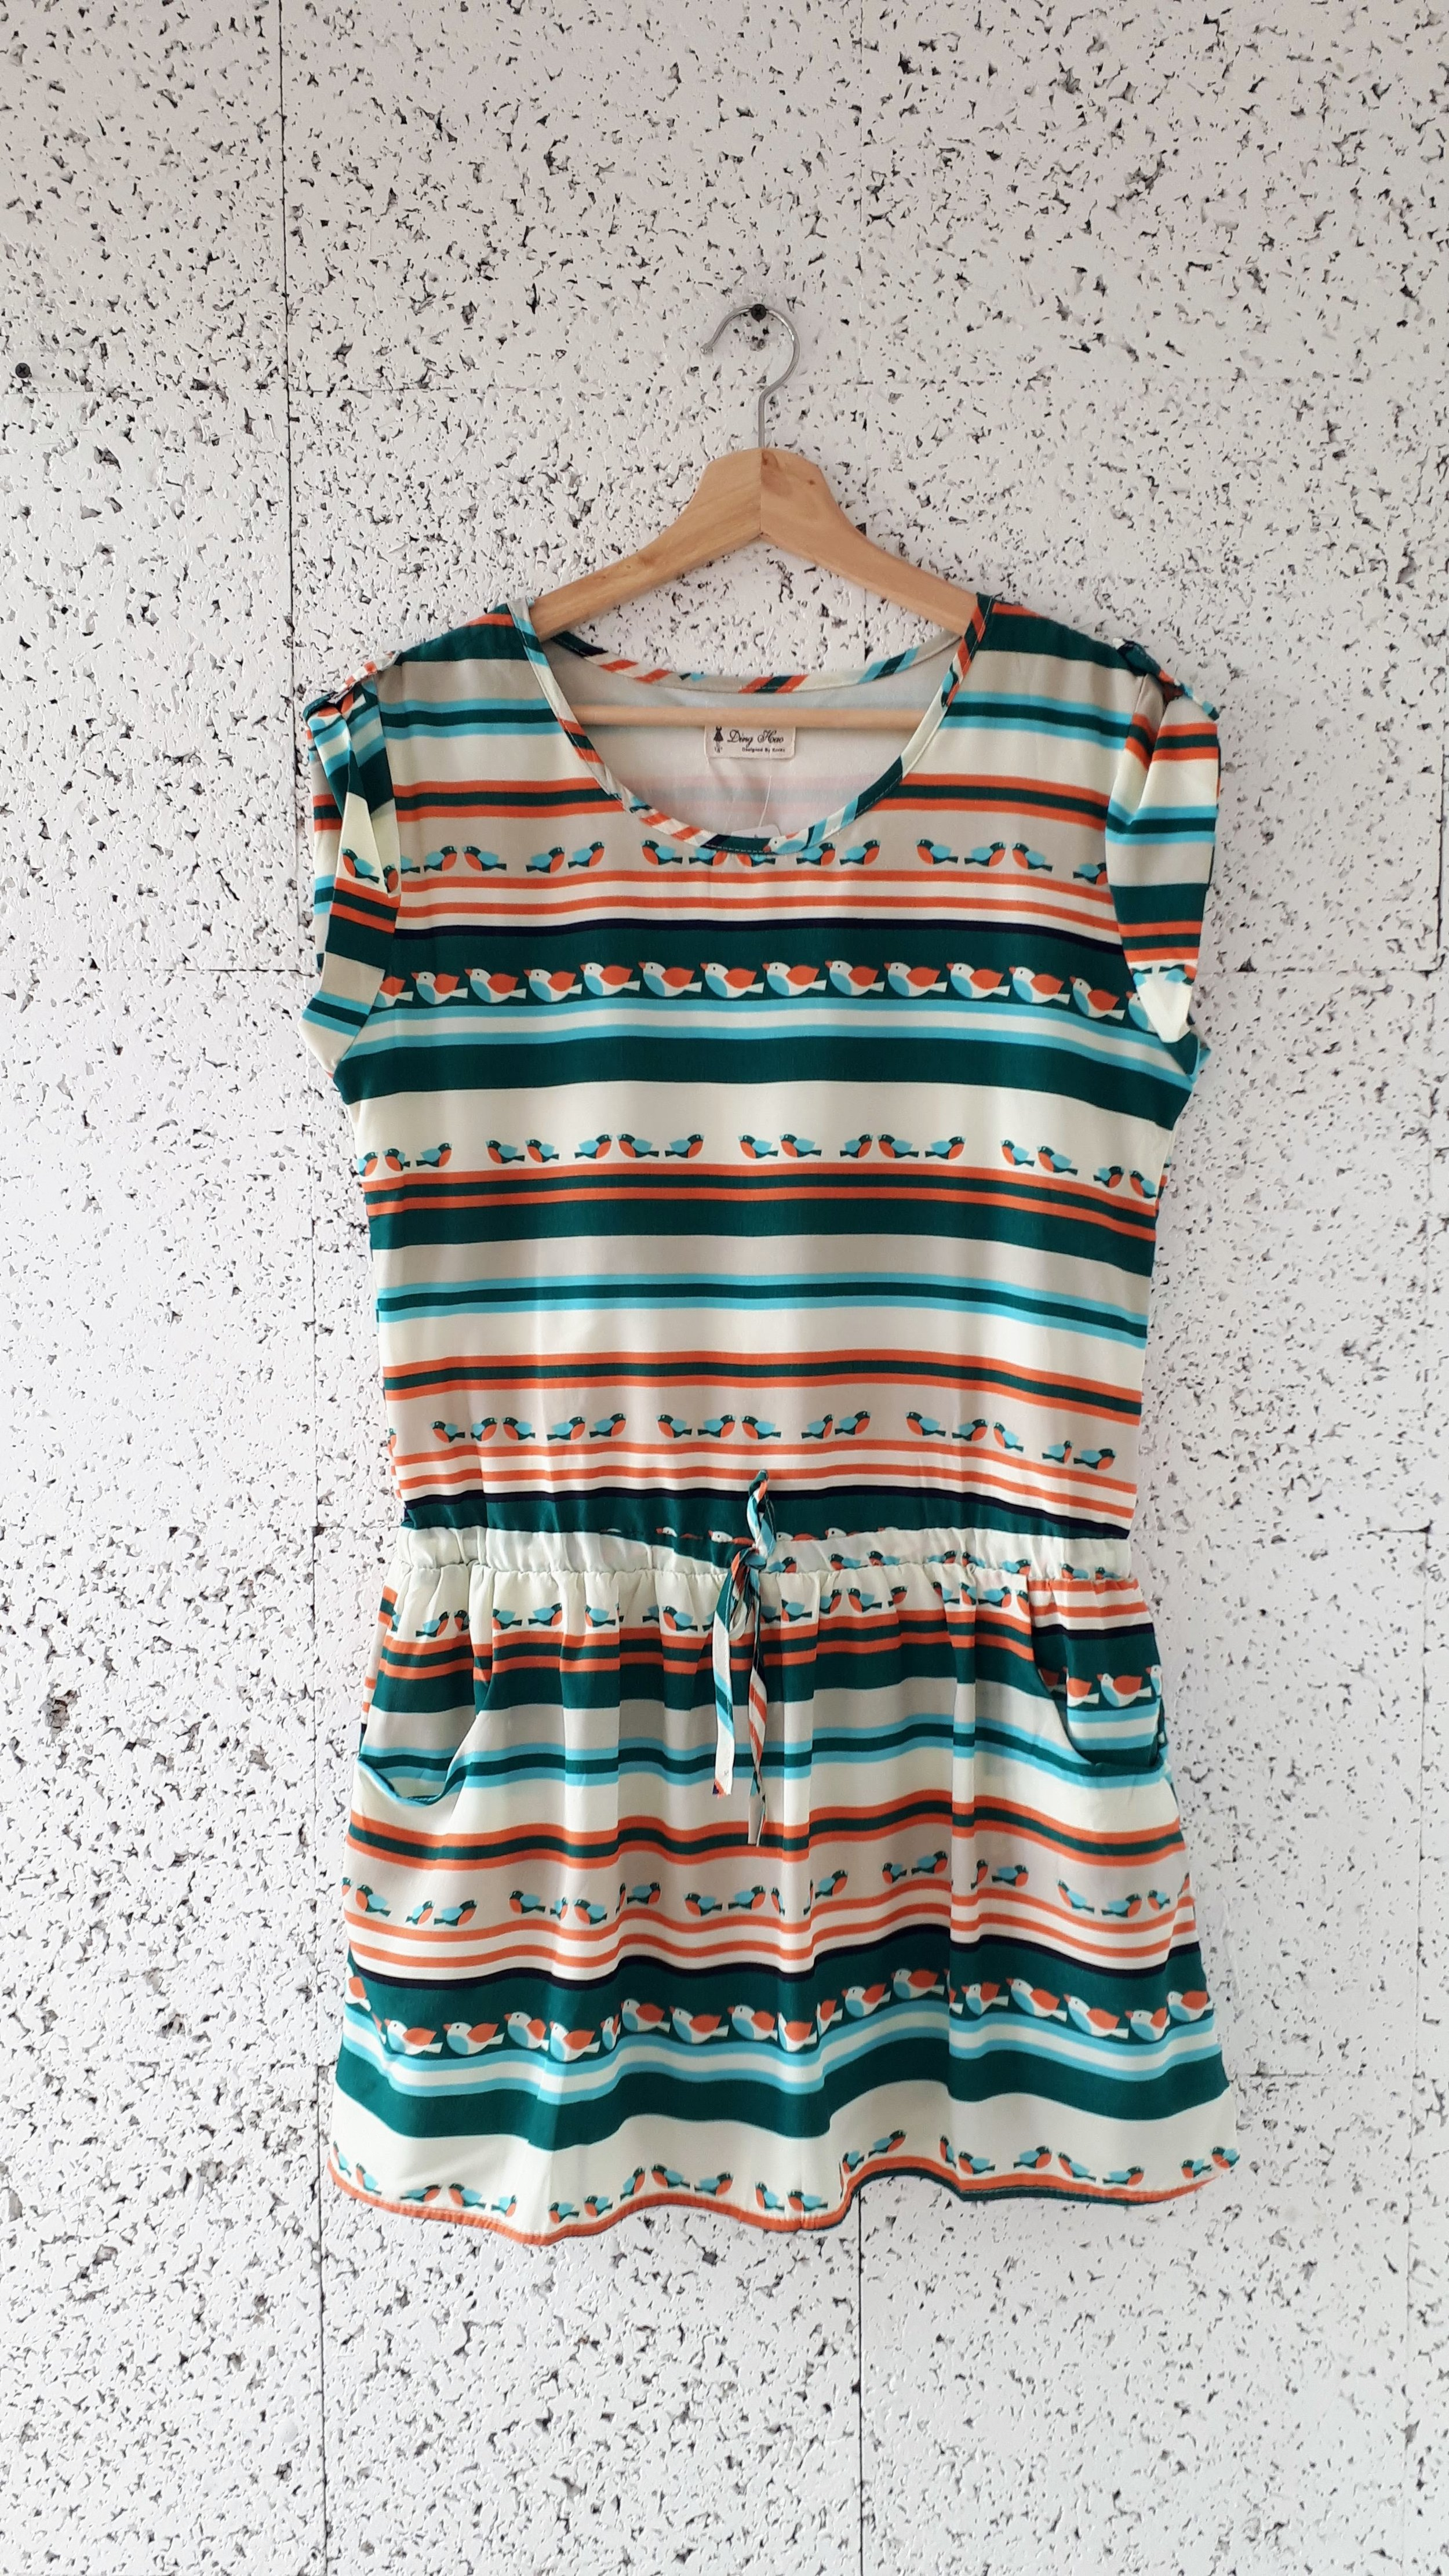 Ding Hao dress; Size M, $28